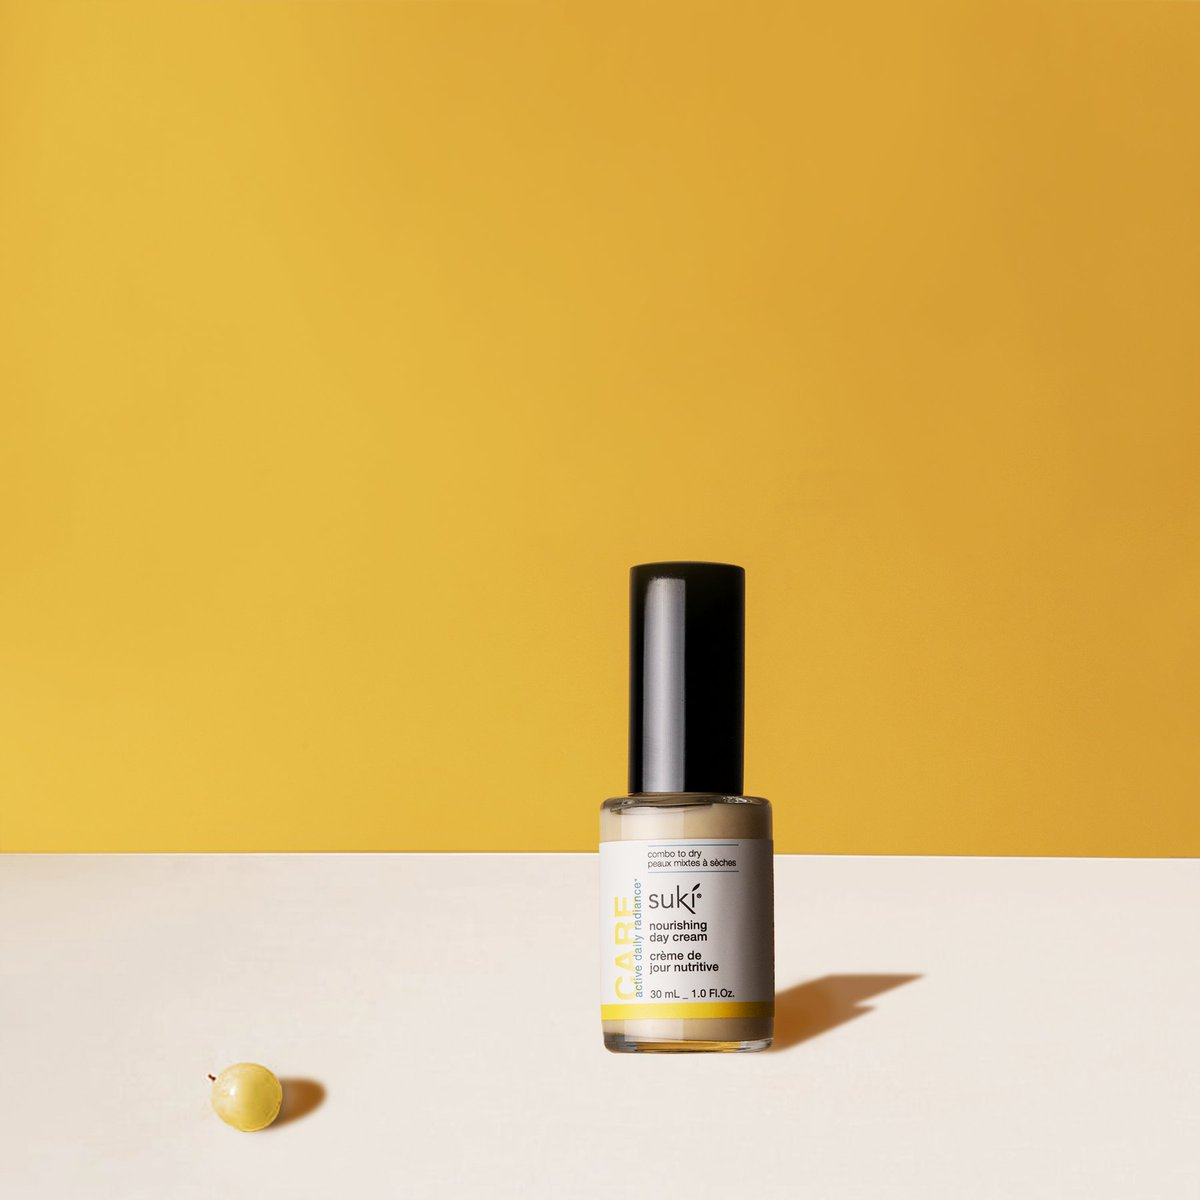 suki skincare nourishing day cream is uses a highly concentrated ingredients made for all types of skin sensitivities which includes resveratrol. Resveratrol is naturally sourced from white grape seeds. https://t.co/LRZRdCPhSz